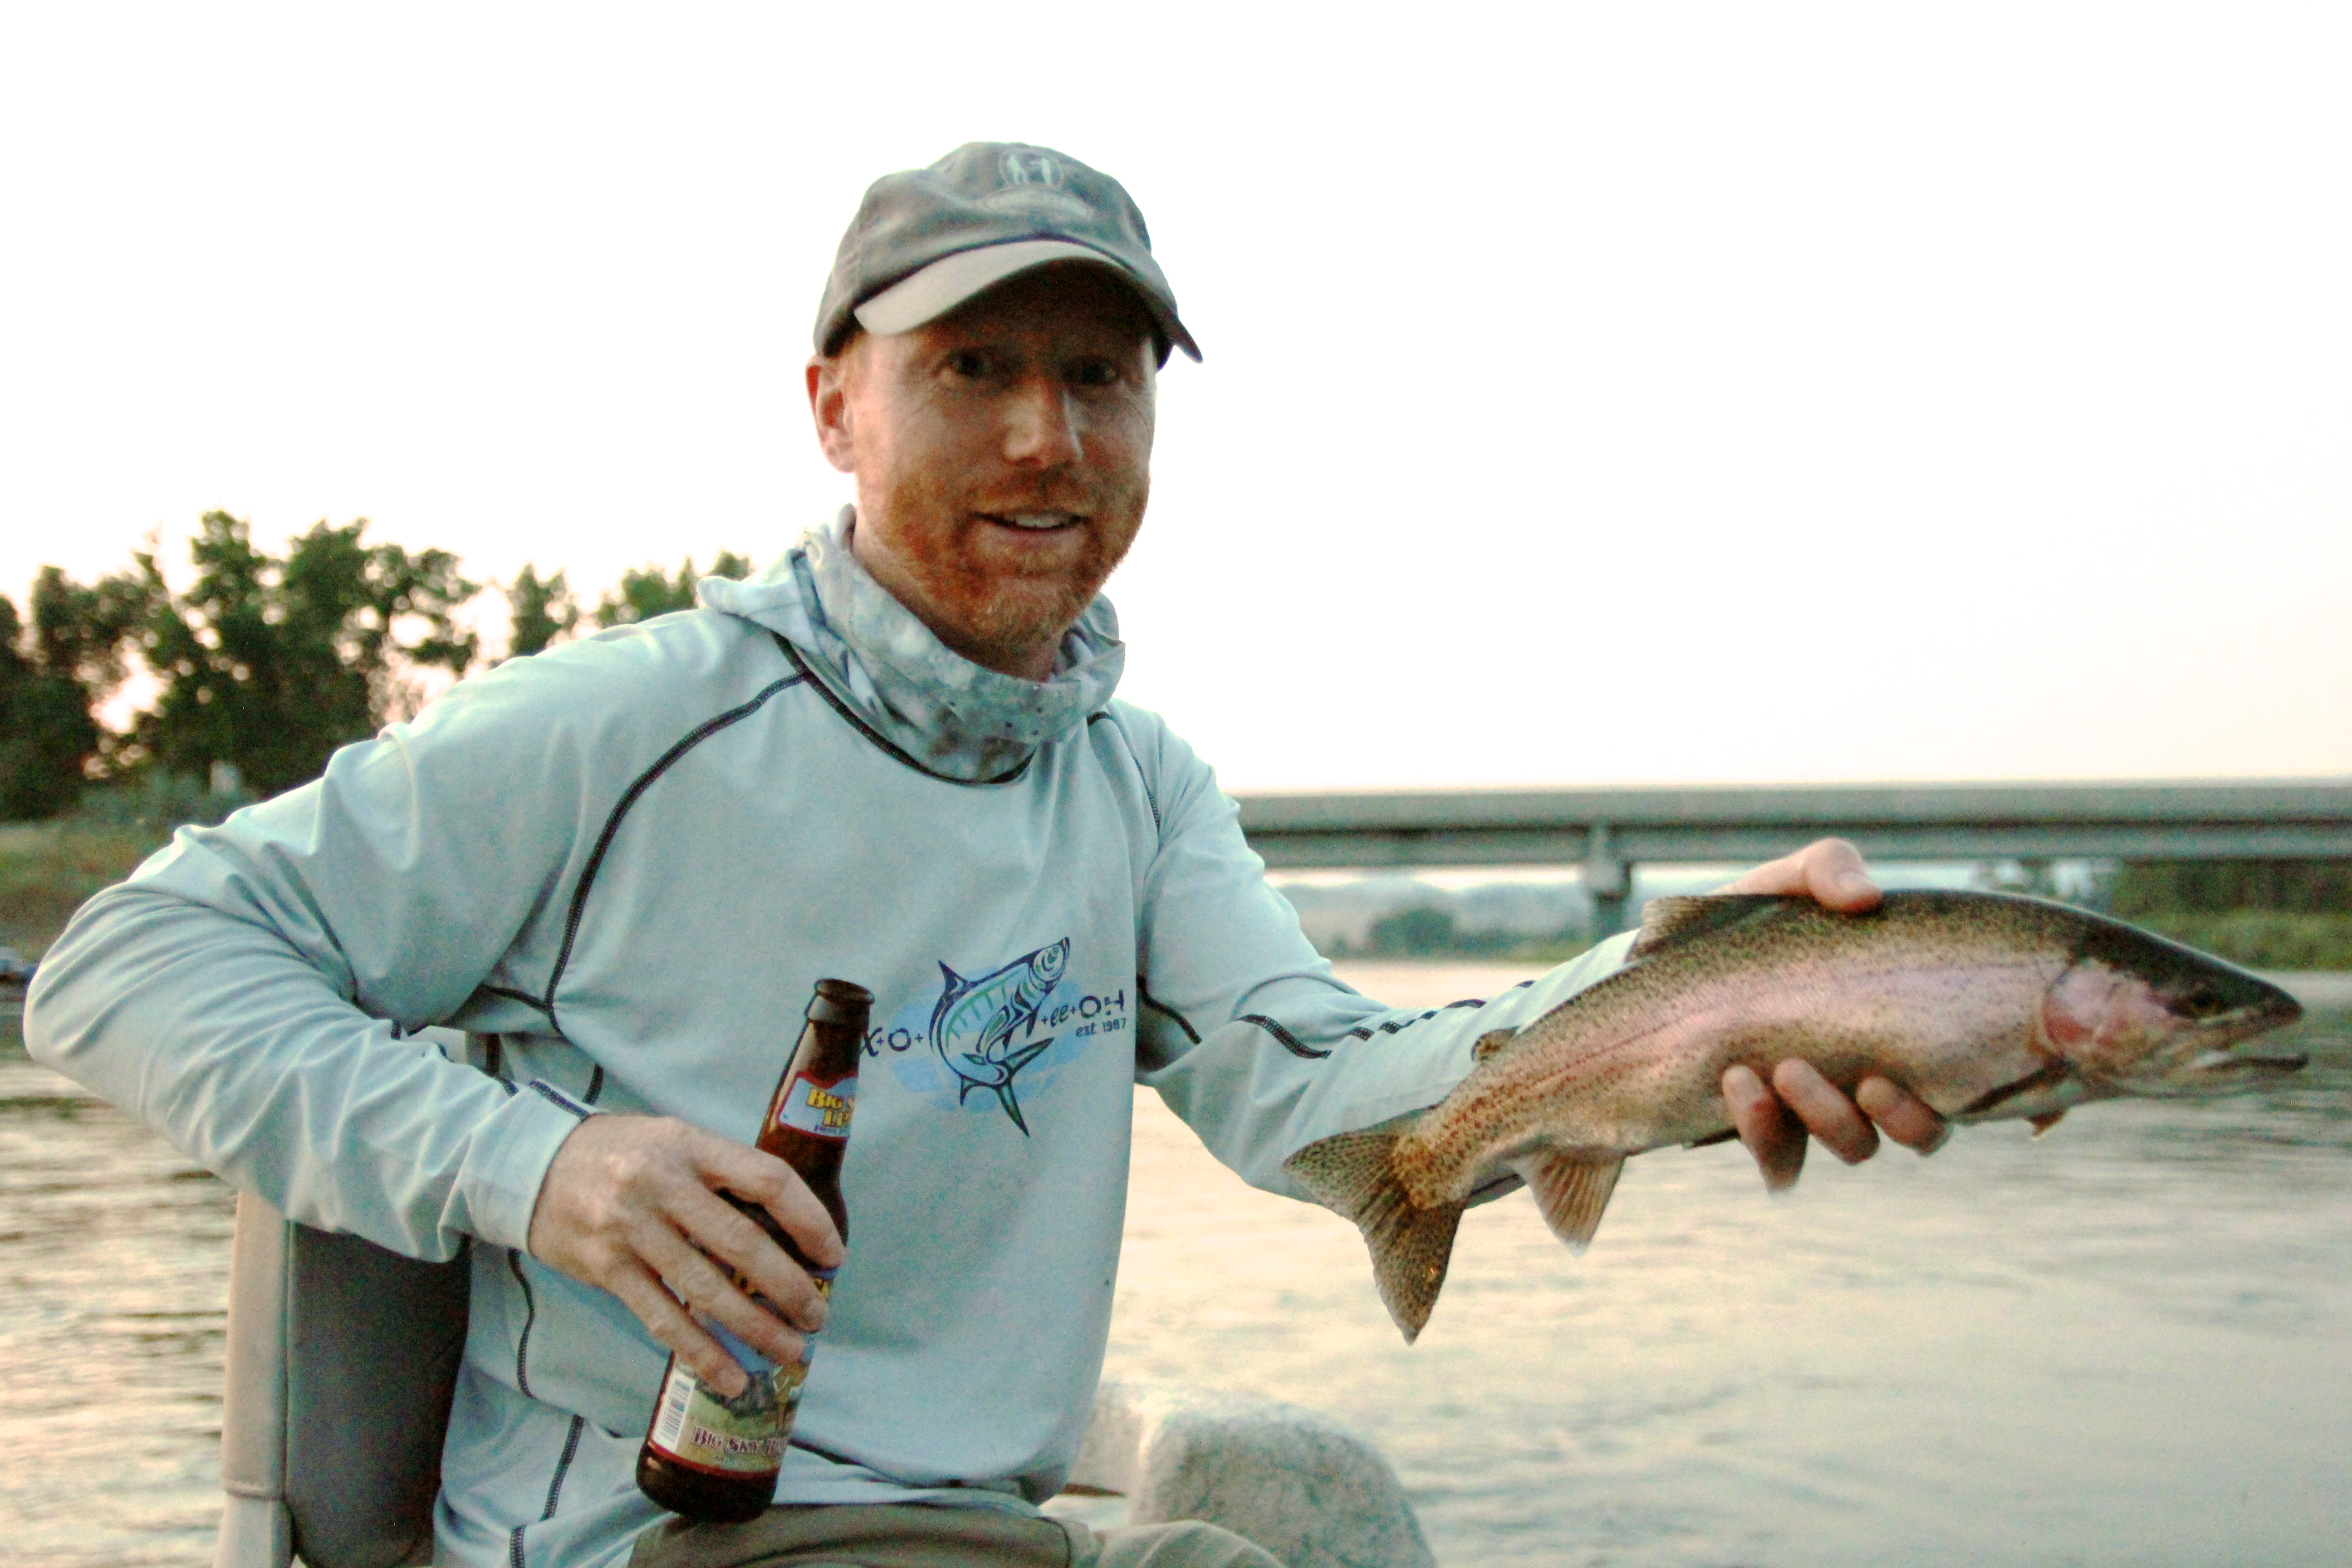 Missouri fishing report 08 08 2014 the current seam for Missouri fishing report